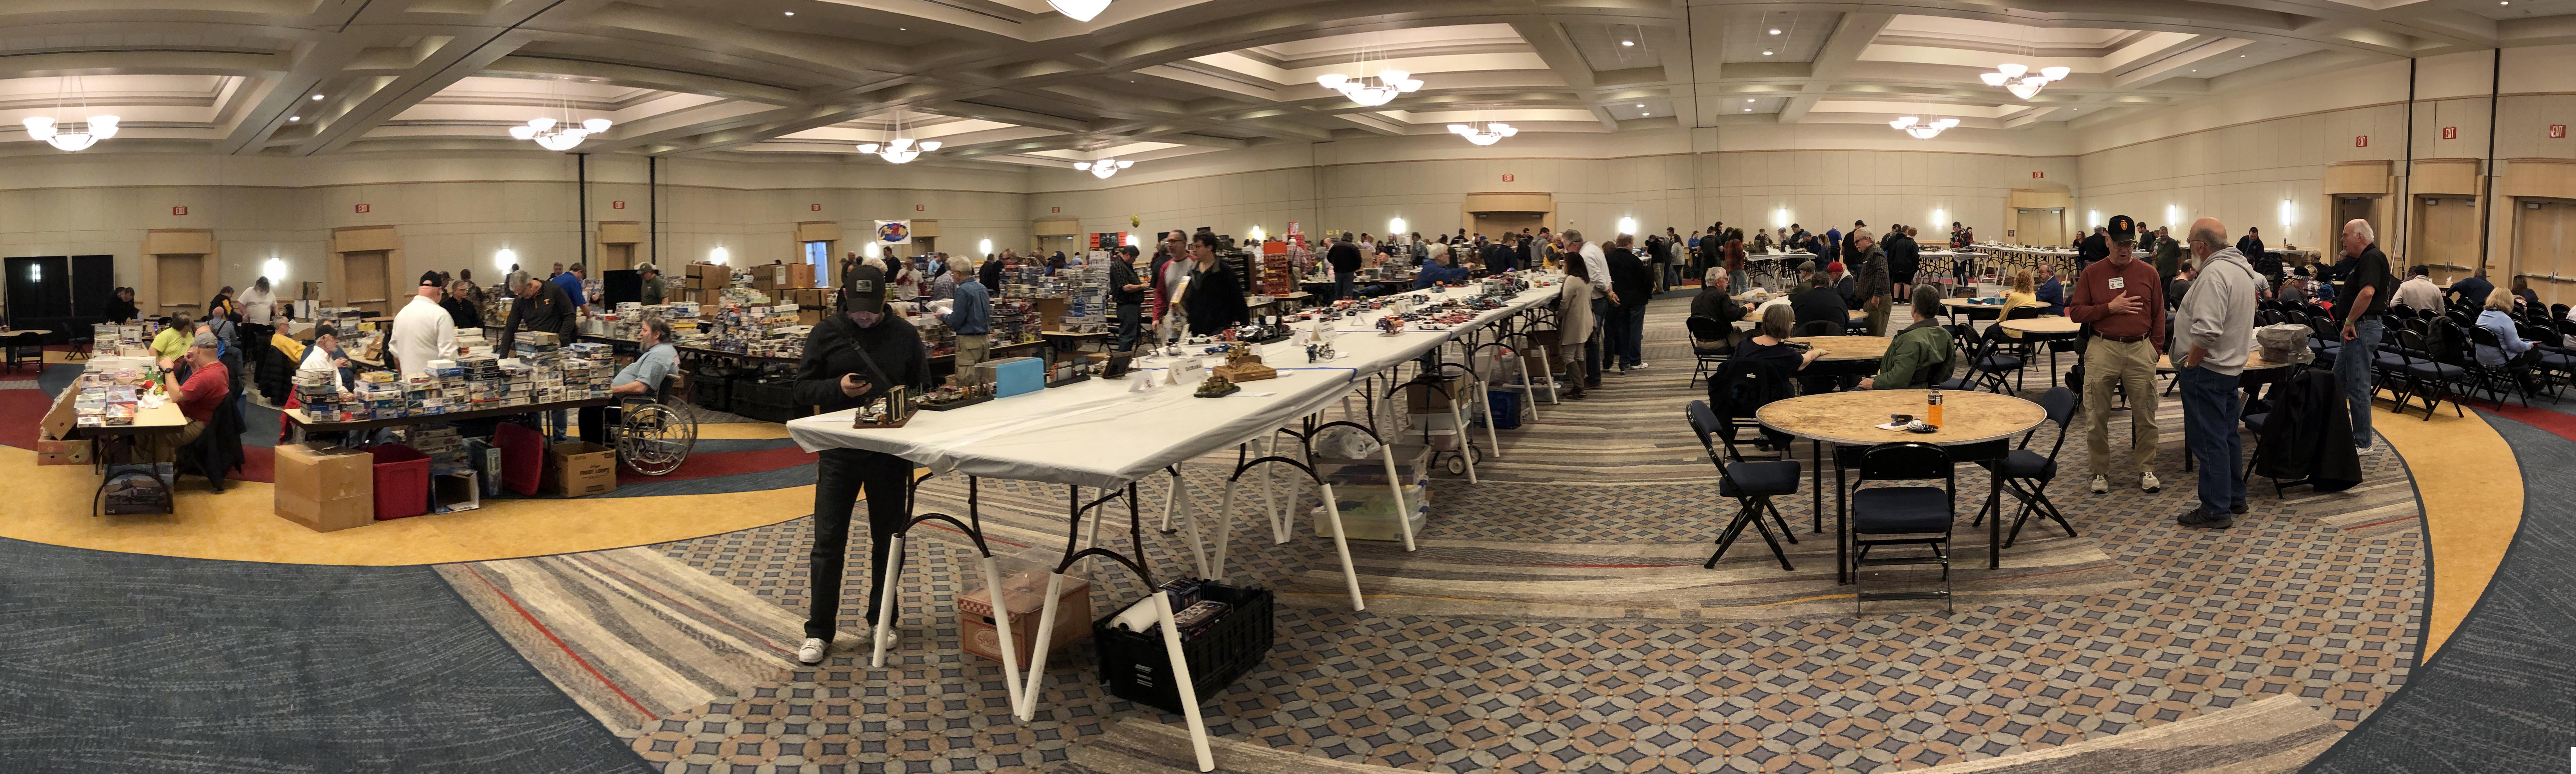 2019 Chattanooga Scale Modelers show.jpg